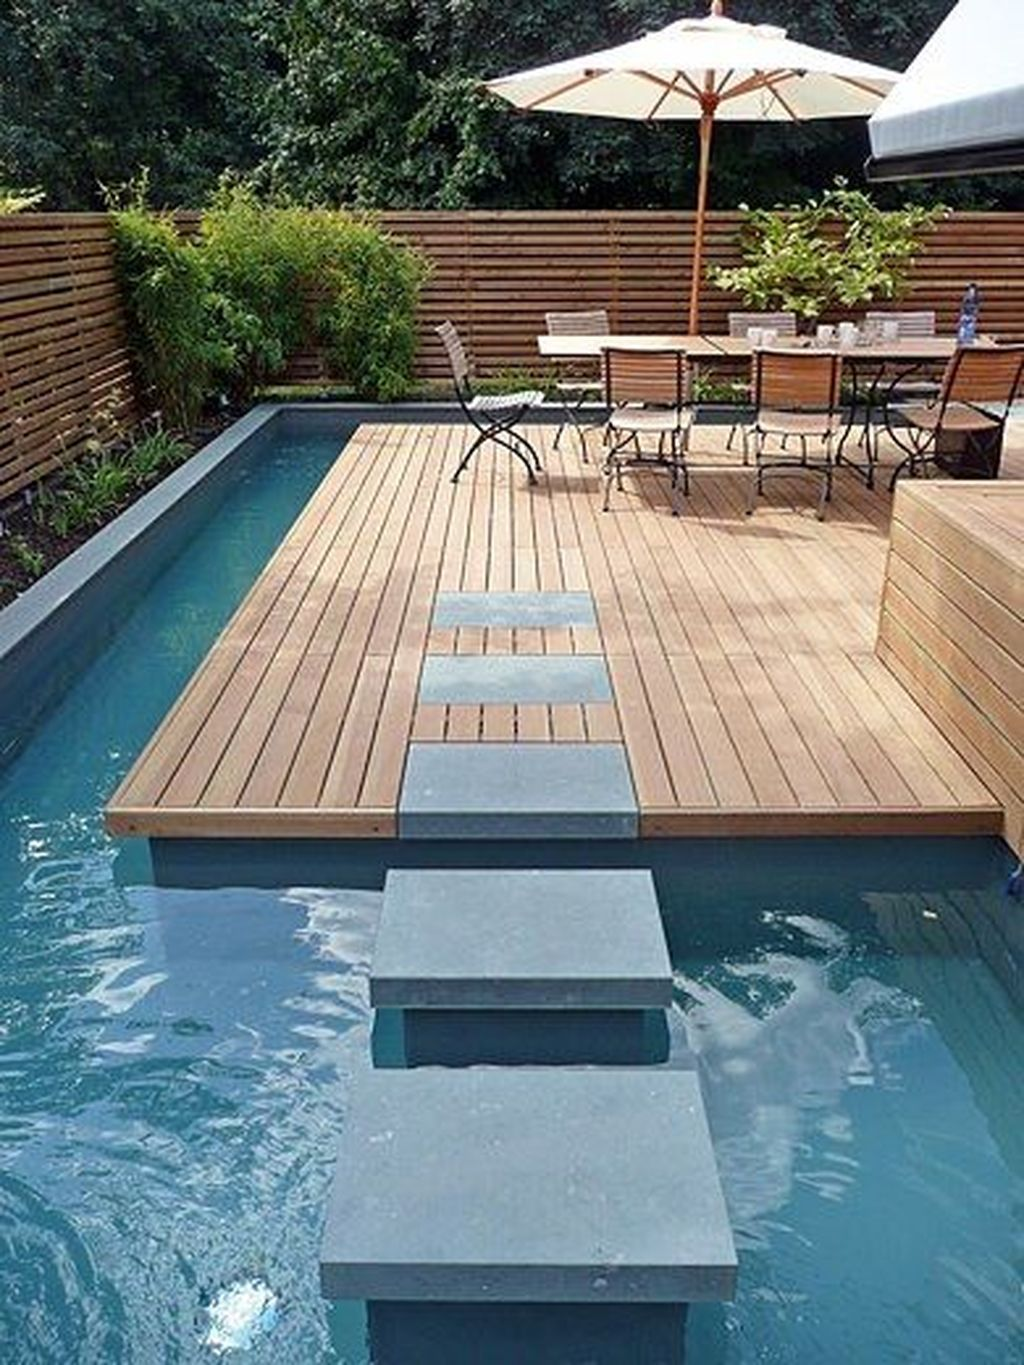 44 minimalist home design with pool ideas on a budget - Beach house decorating ideas on a budget ...